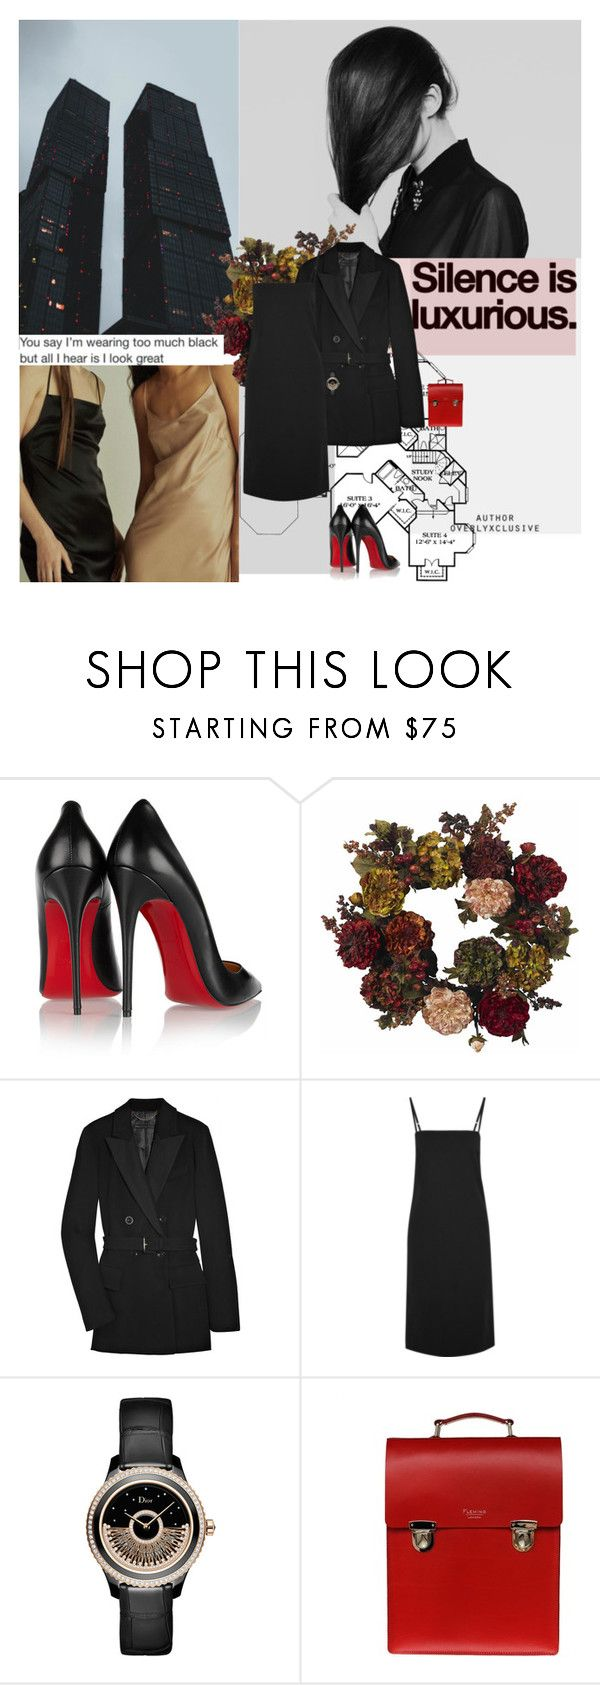 """""""1091. Towers"""" by dreamingofamelia ❤ liked on Polyvore featuring Goodlife, Christian Louboutin, Nearly Natural, Marc by Marc Jacobs, Bassike, Christian Dior and Sophie Fleming"""